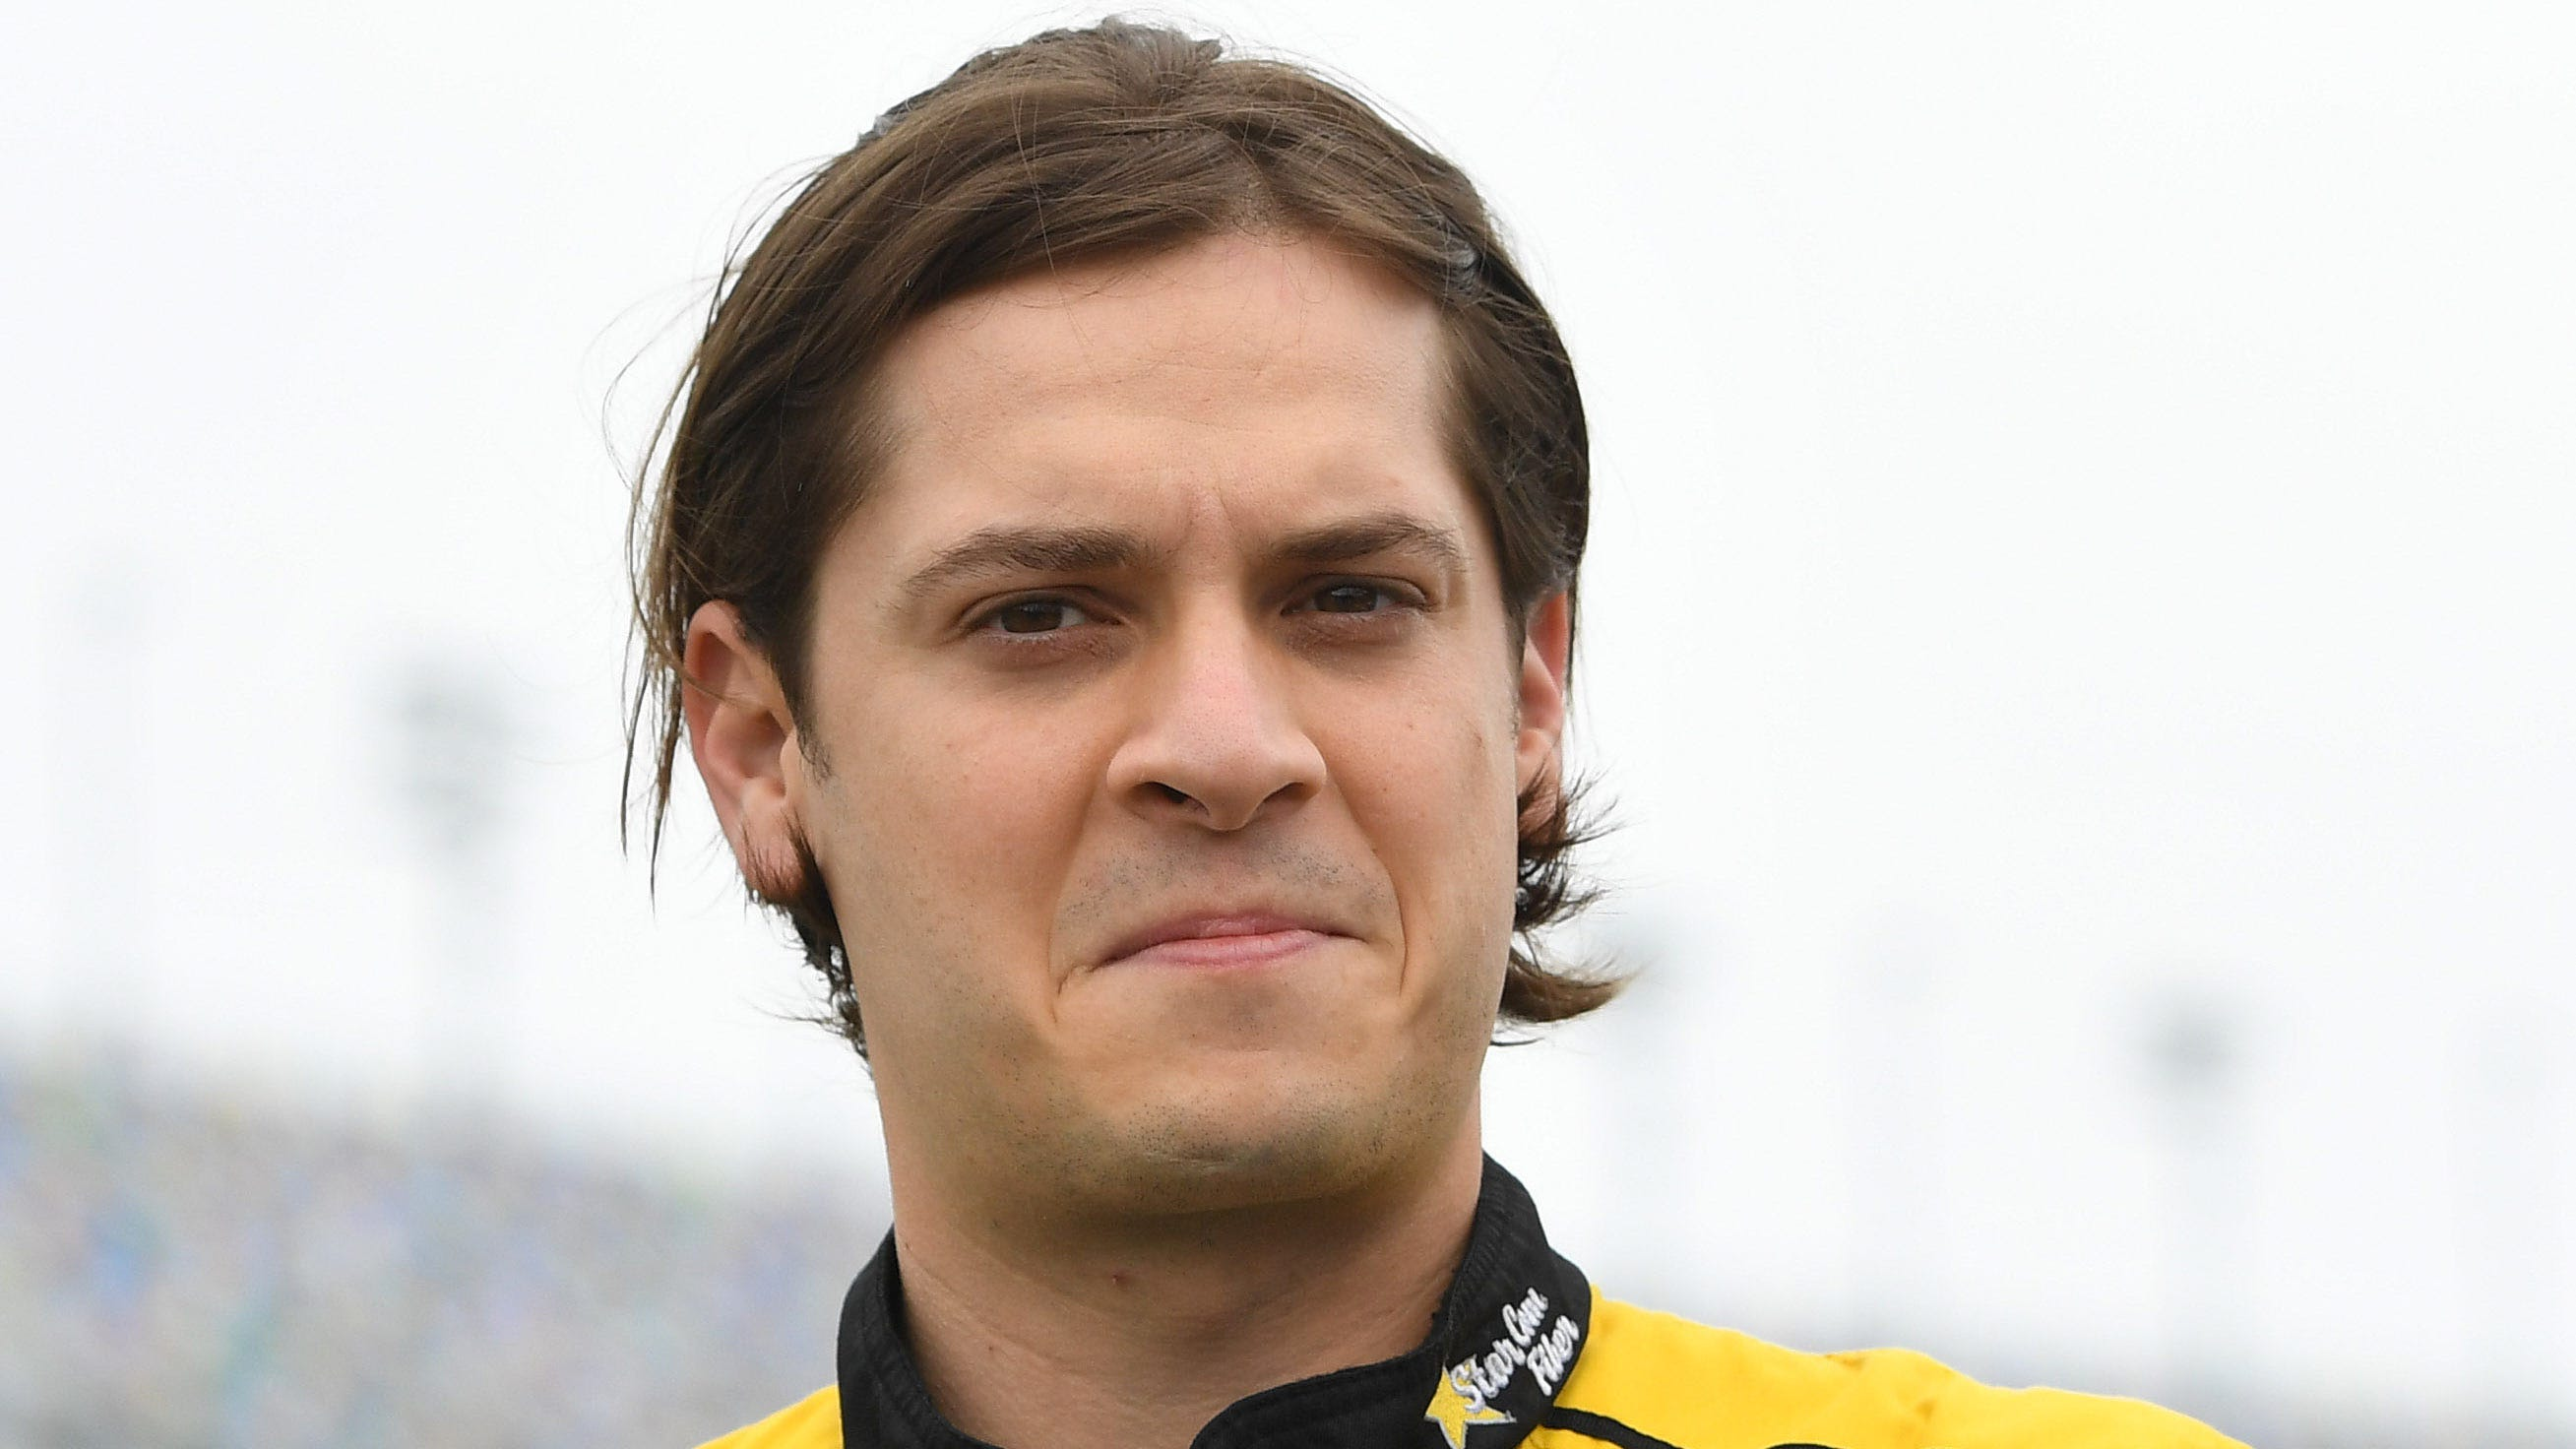 NASCAR's Landon Cassill to be paid in cryptocurrency in sponsorship deal with Voyager, starting with Nashville race